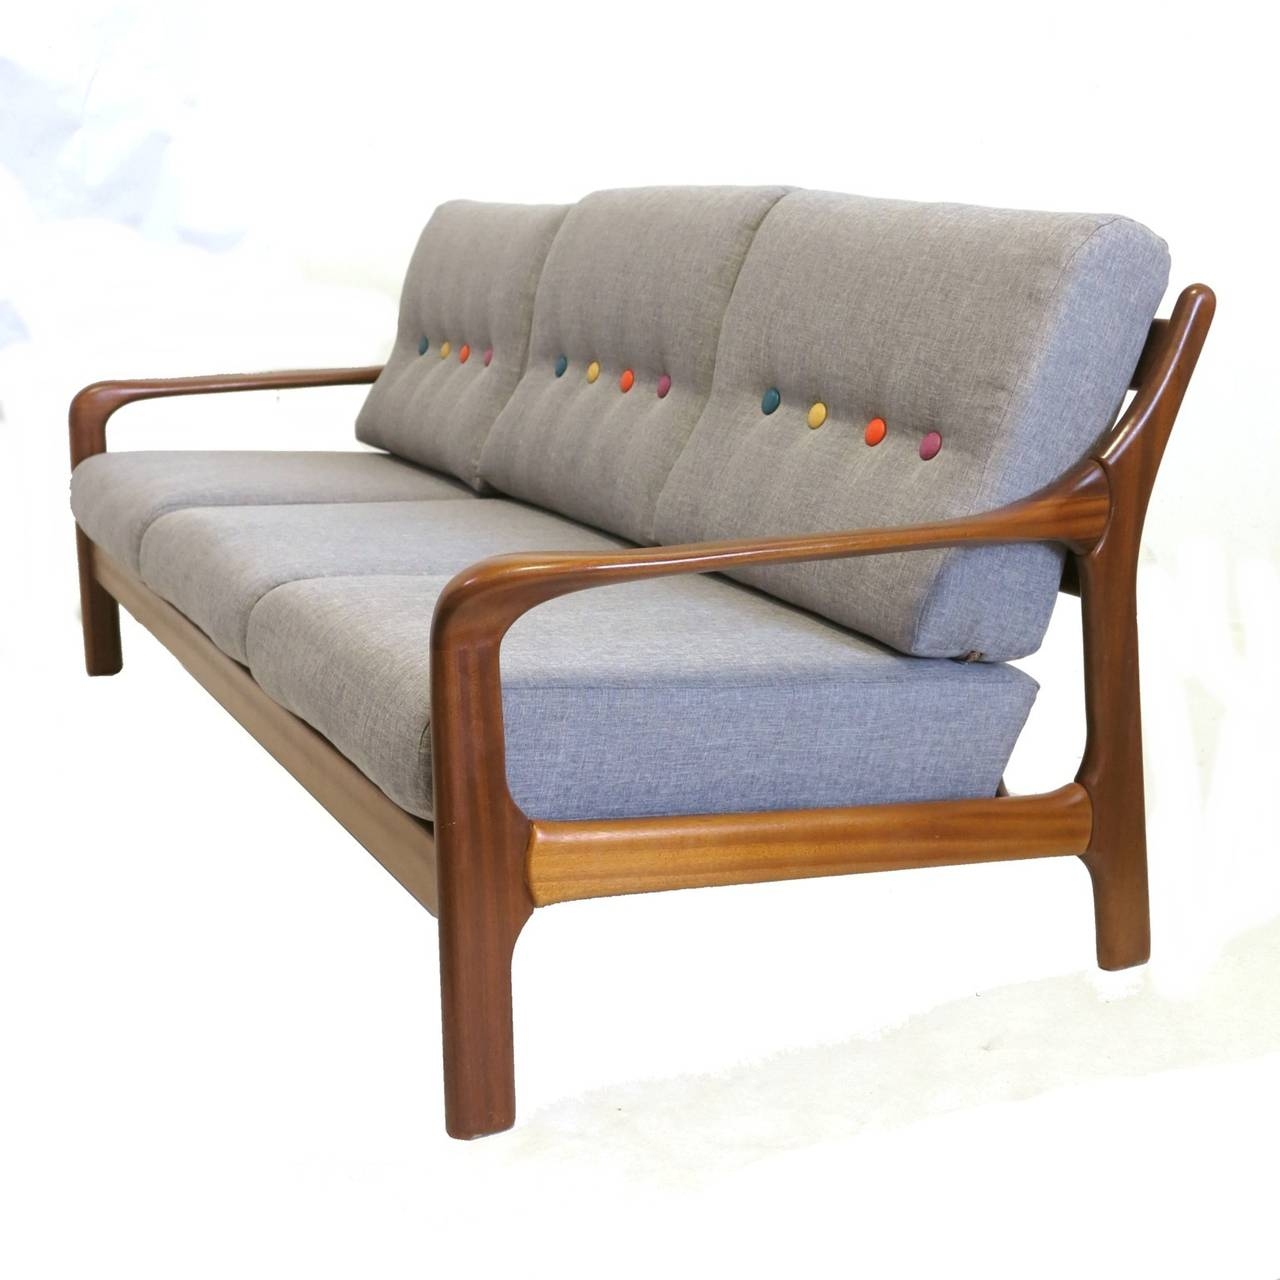 Sofa Or Daybed In The Scandinavian Style 1950 1960 At 1stdibs